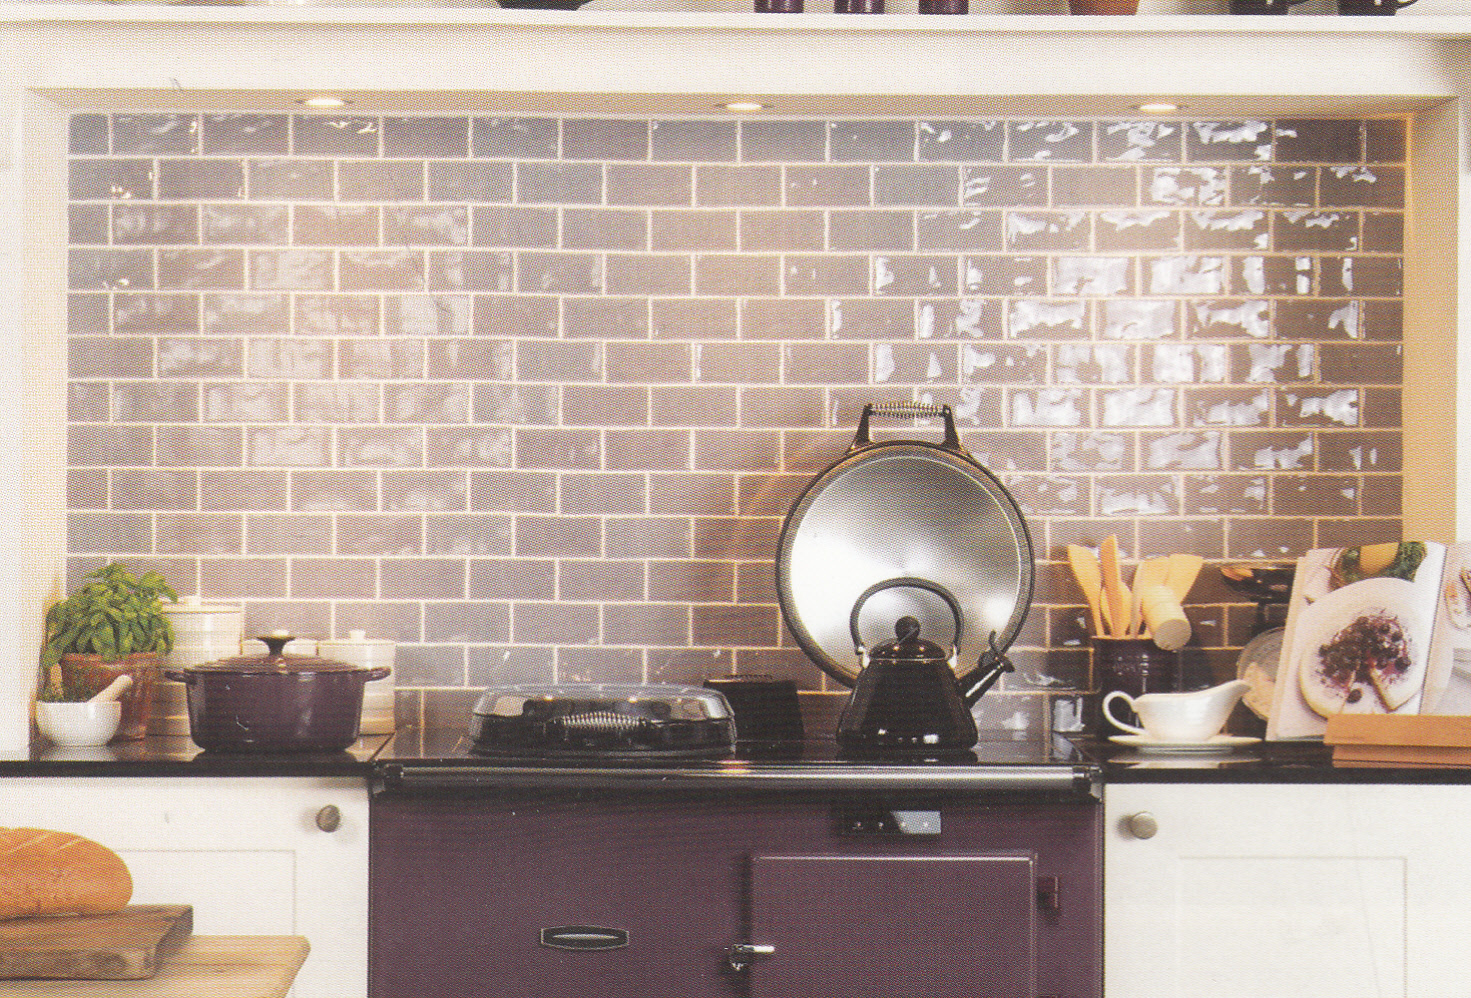 Marsh Subway Tile 130x63